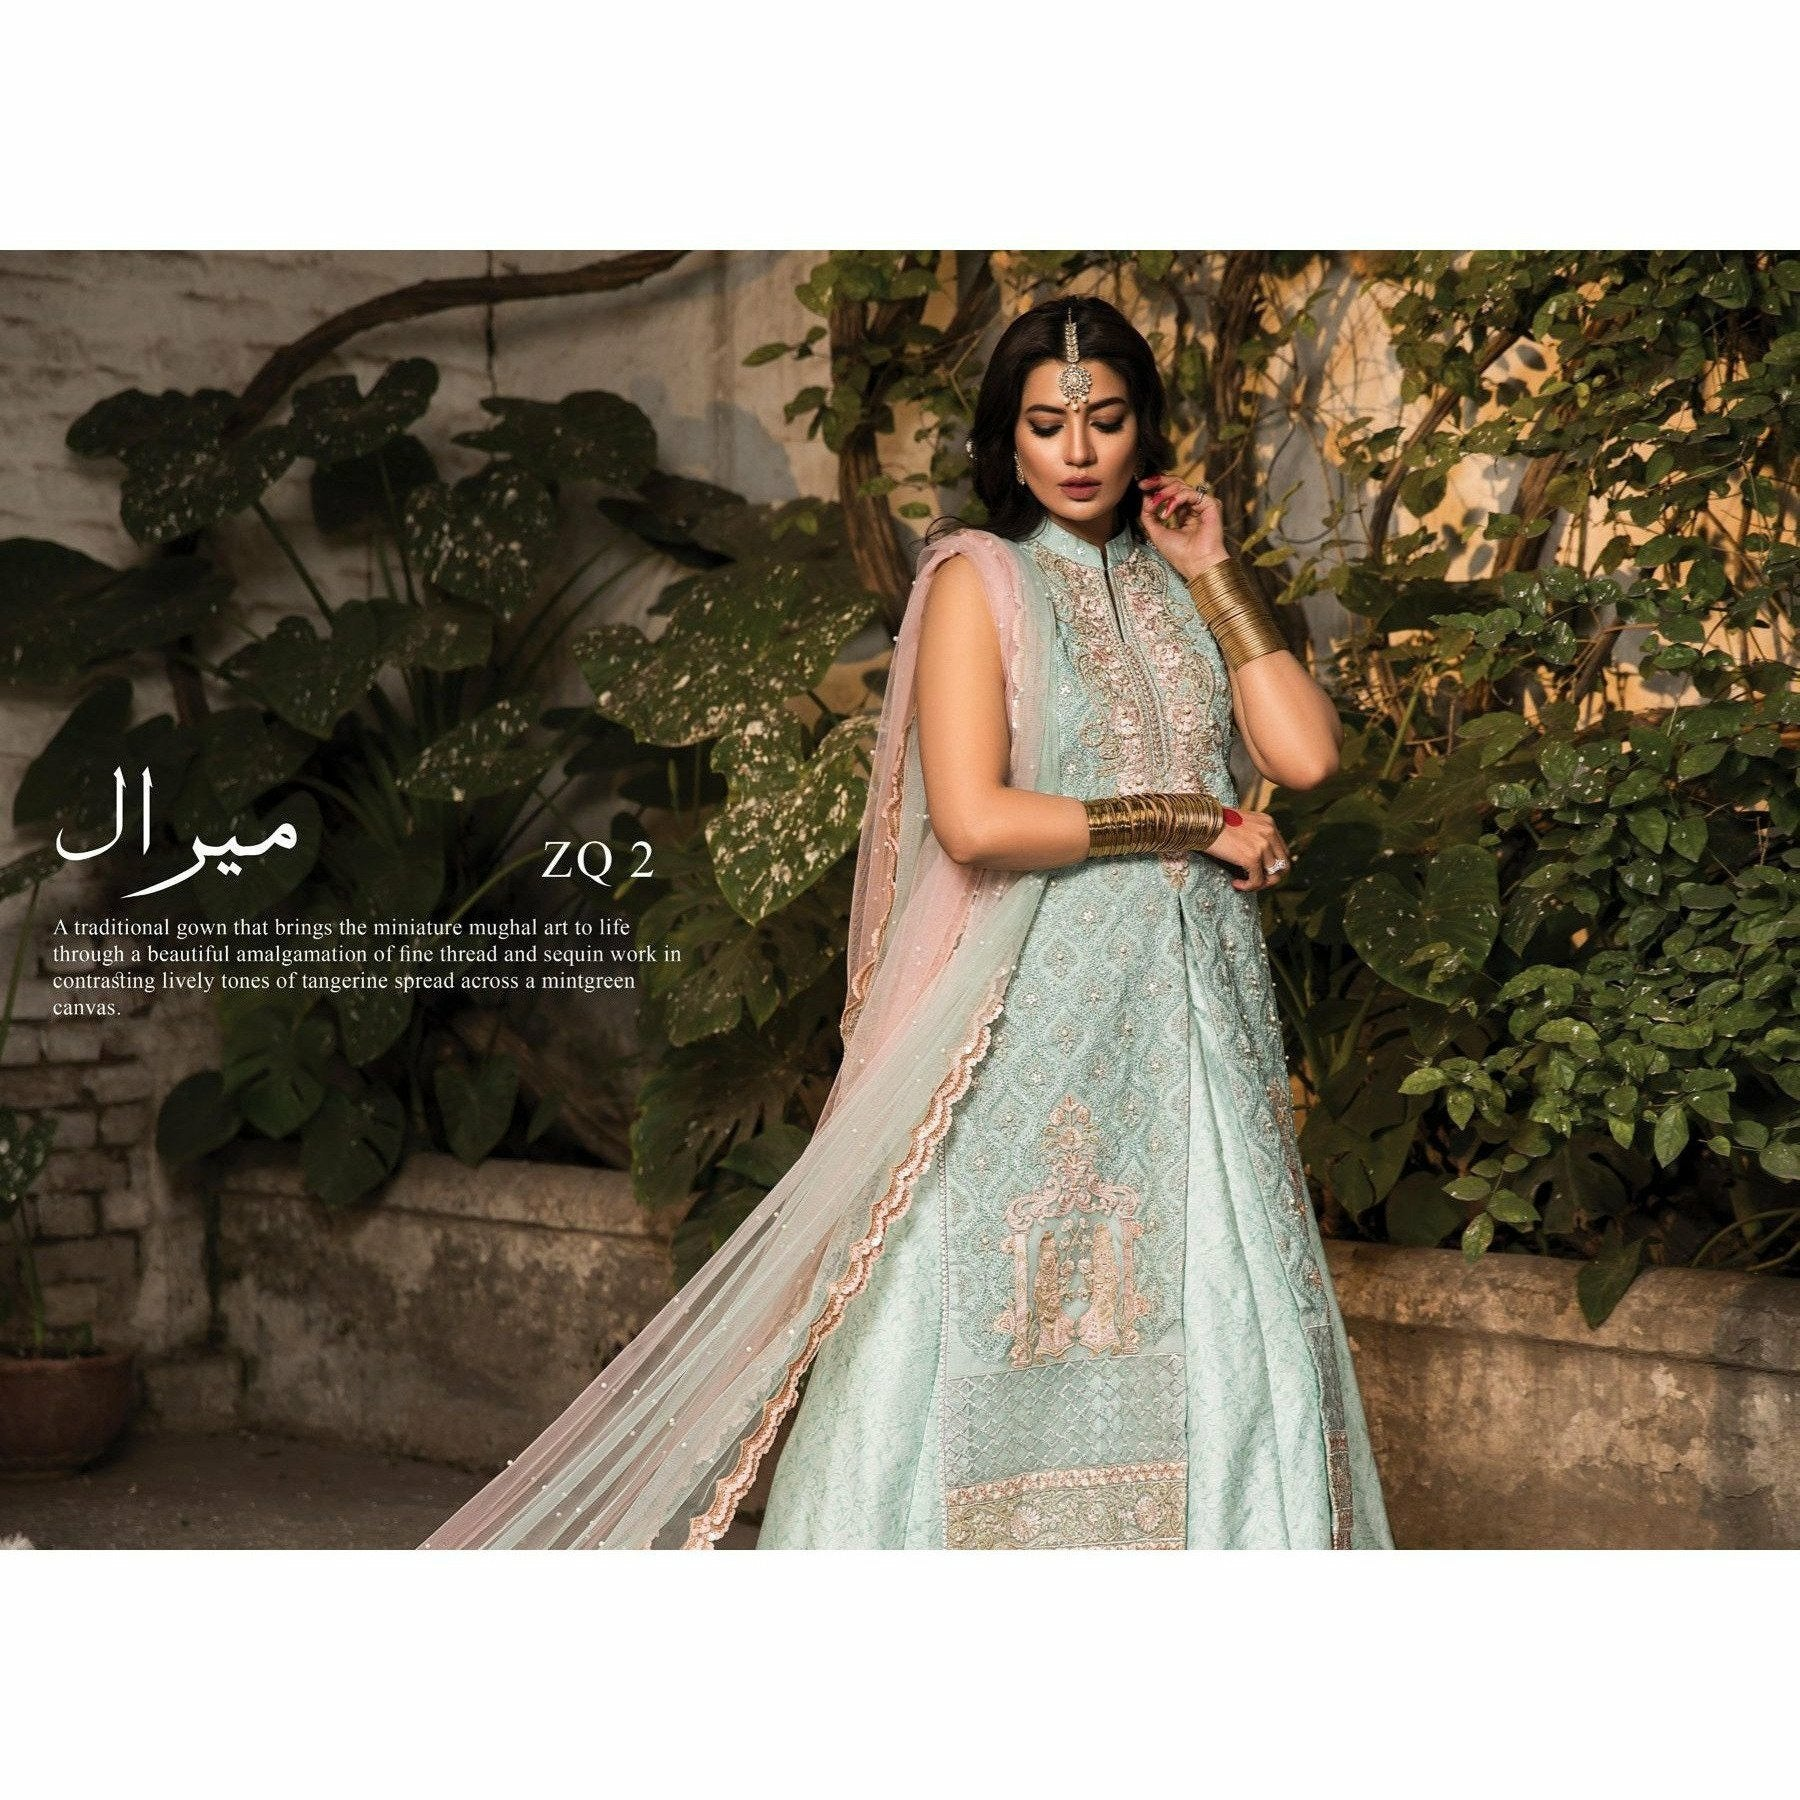 Rubaai By Zarqash | Luxury Wedding 20 | ZQ2 - Meeral